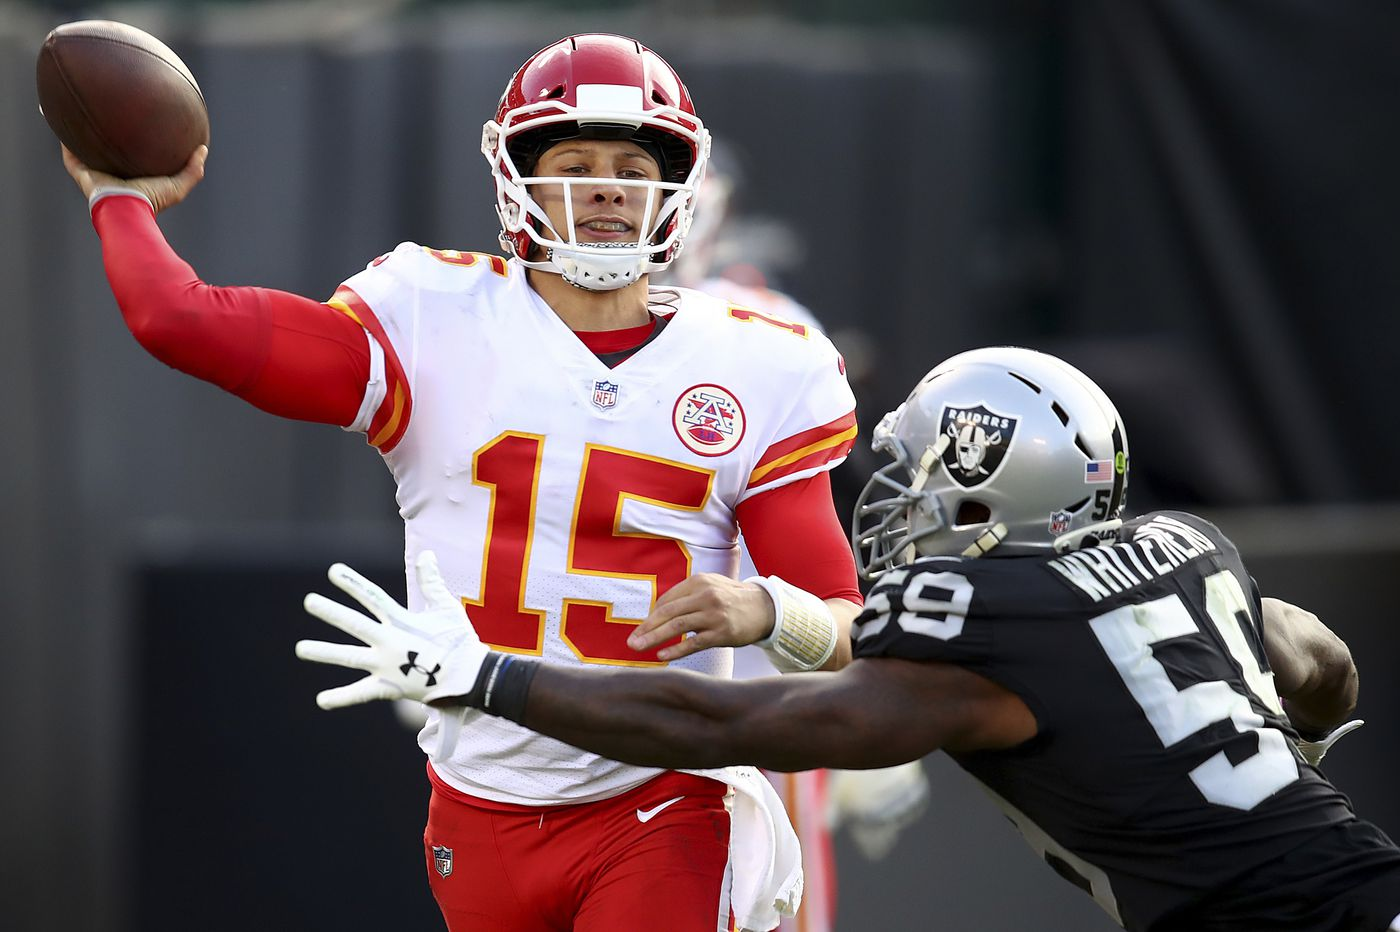 Vegas Vic's NFL Week 13 predictions: Andy Reid and the Chiefs are money after bye weeks